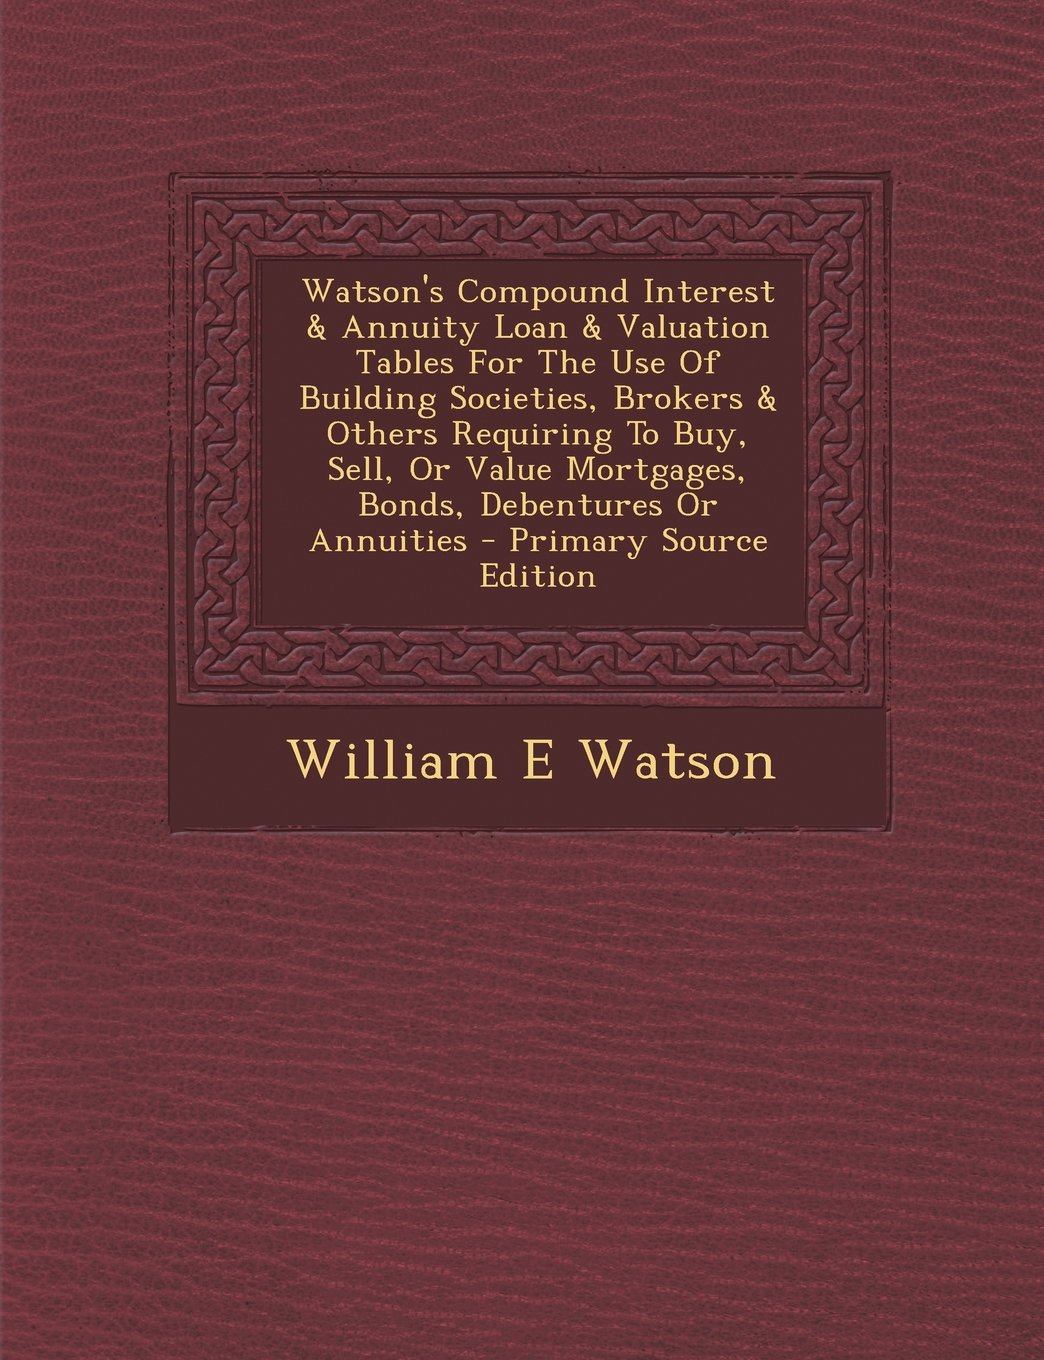 Watson's Compound Interest & Annuity Loan & Valuation Tables For The Use Of Building Societies, Brokers & Others Requiring To Buy, Sell, Or Value Mortgages, Bonds, Debentures Or Annuities pdf epub